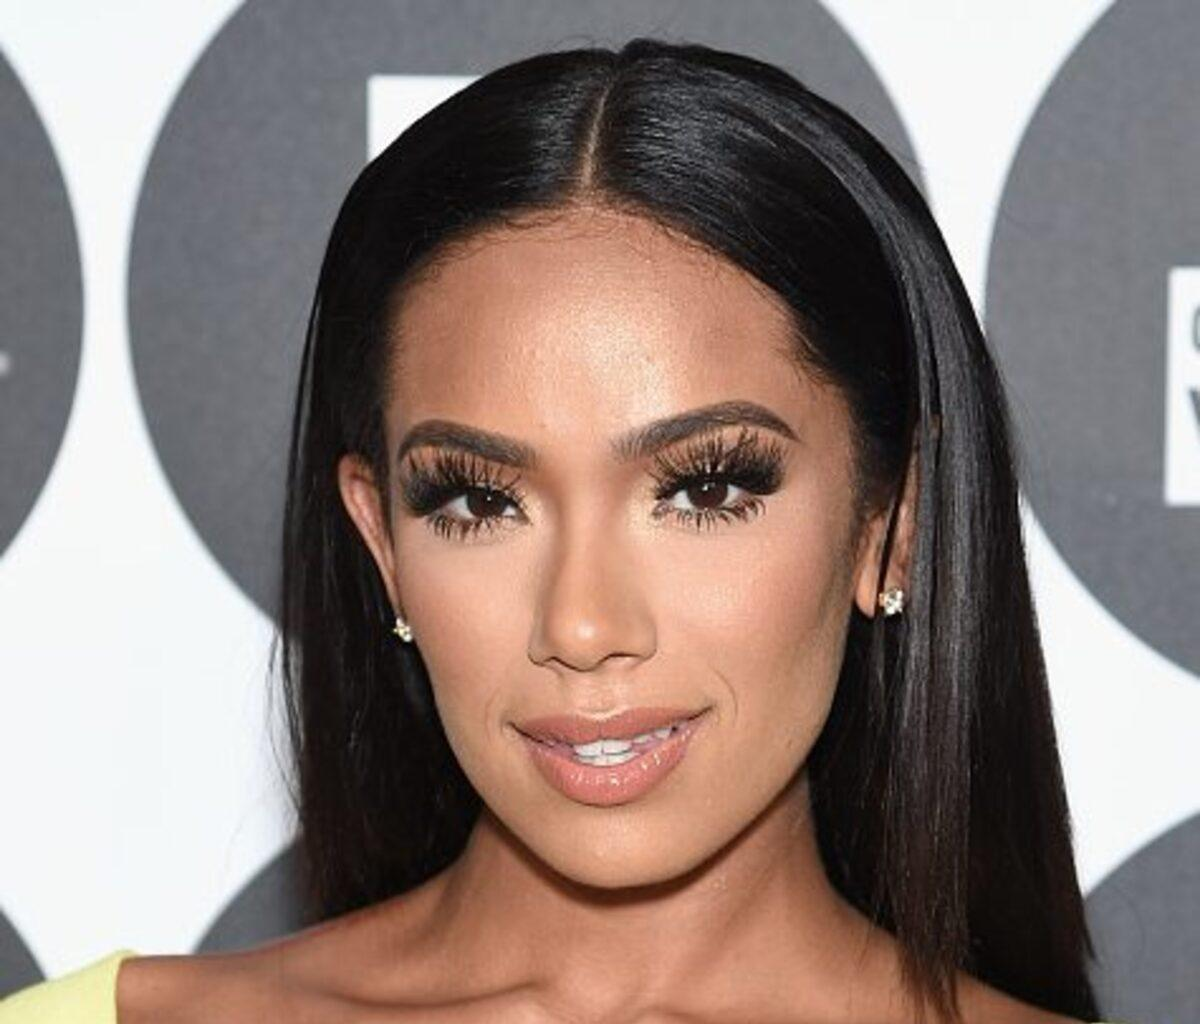 Erica Mena Shows Fans What She's Having On Her 'Cheat Day' - See The Juicy Clips!